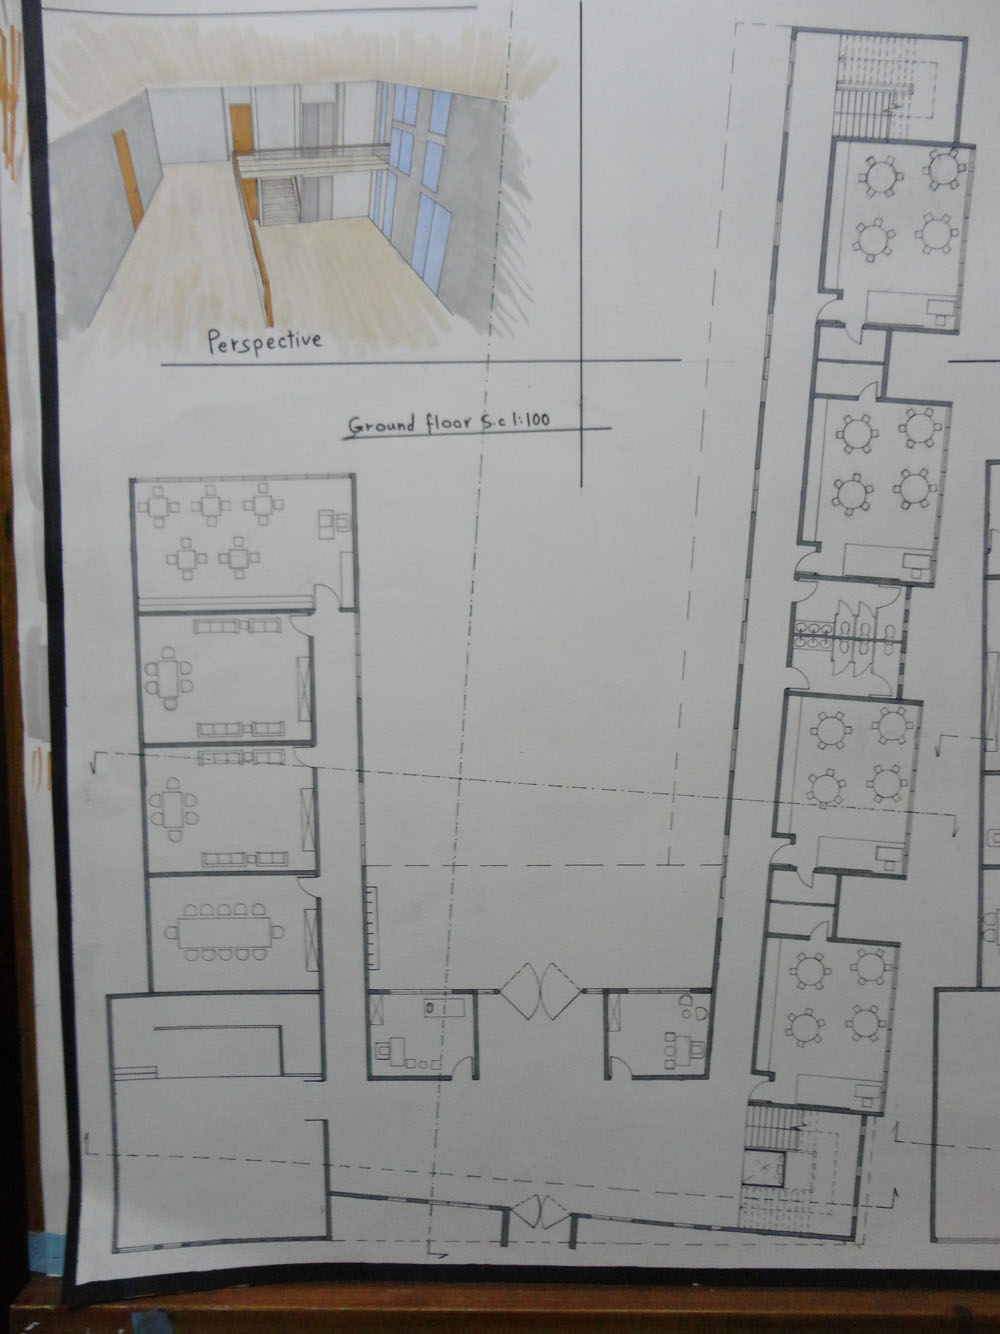 Elementary School for fresh children ground floor plan